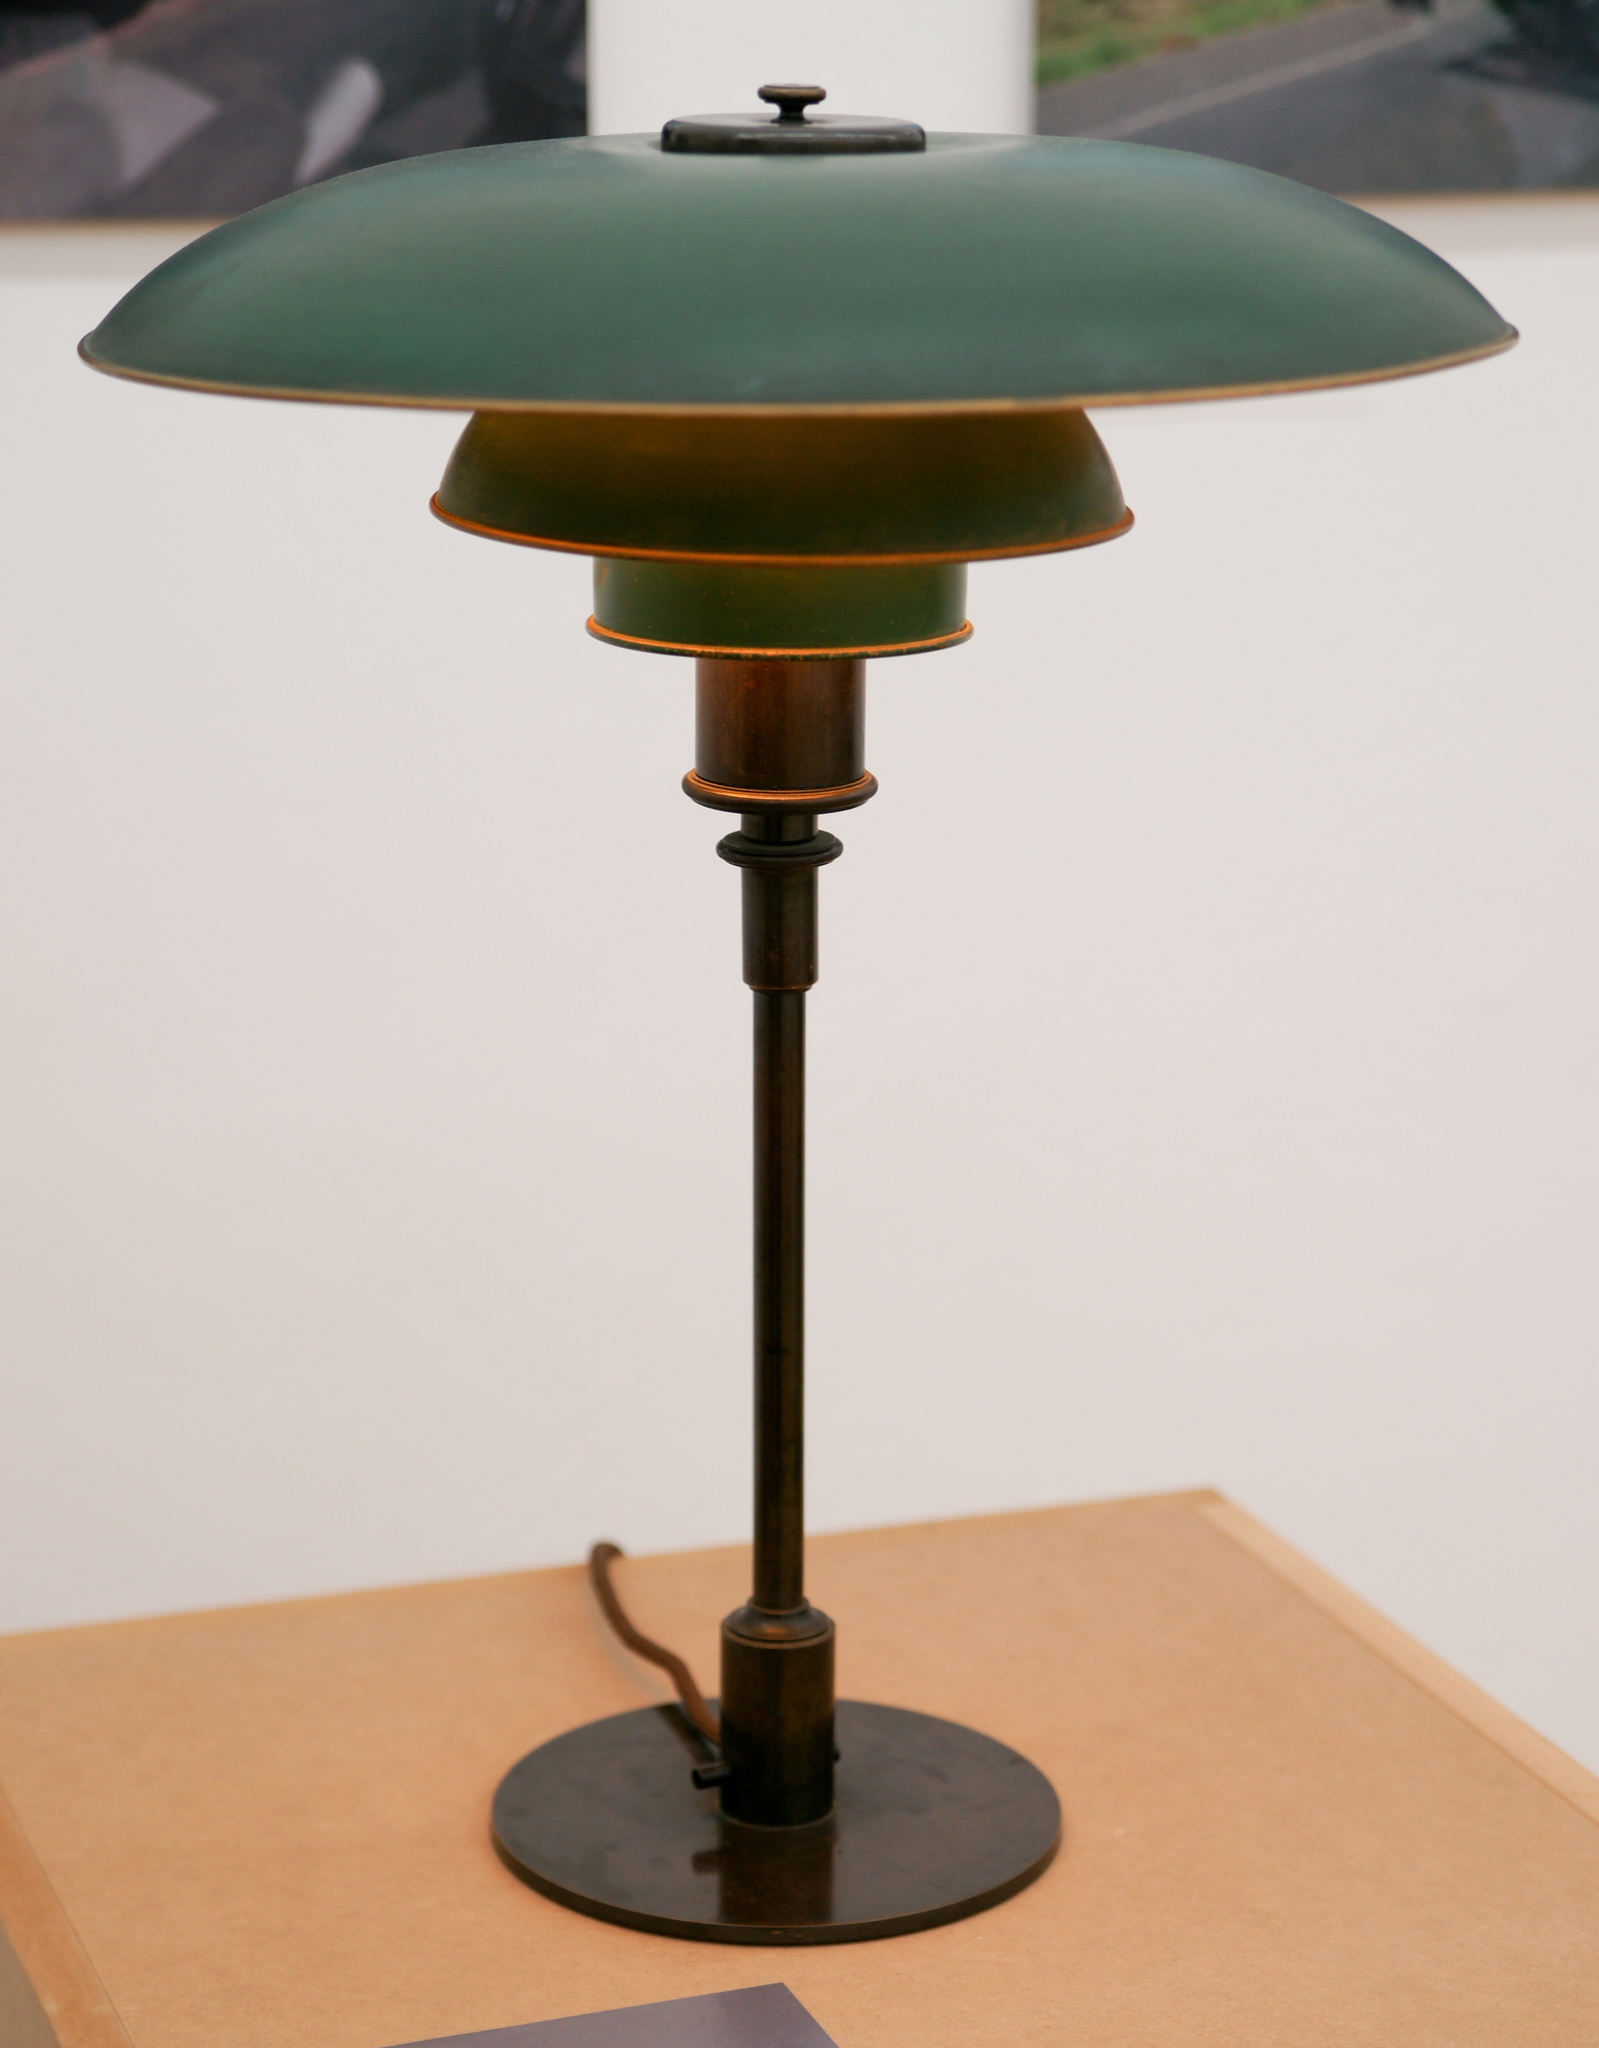 replica louis poulsen table lamp by poul henningsen buy in online shop price order online. Black Bedroom Furniture Sets. Home Design Ideas